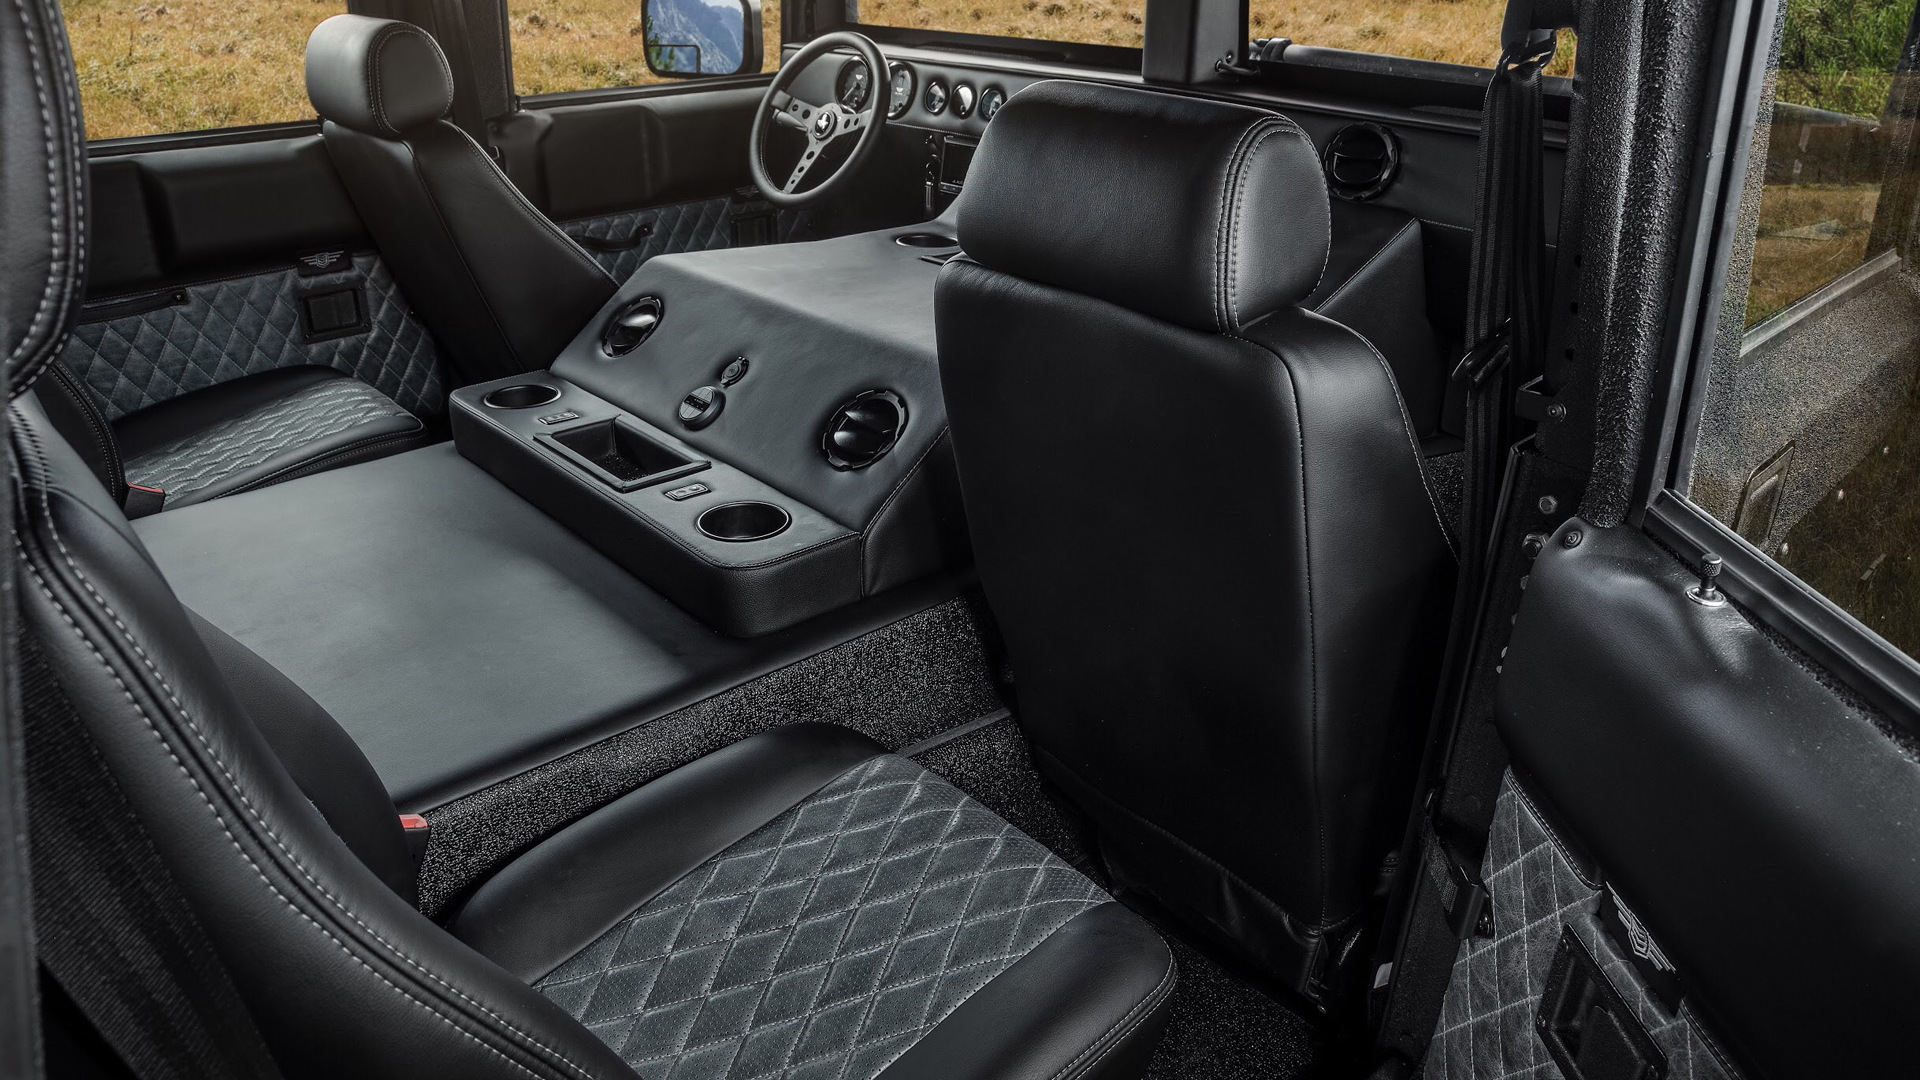 Mil-Spec Launch Edition #002 Hummer H1